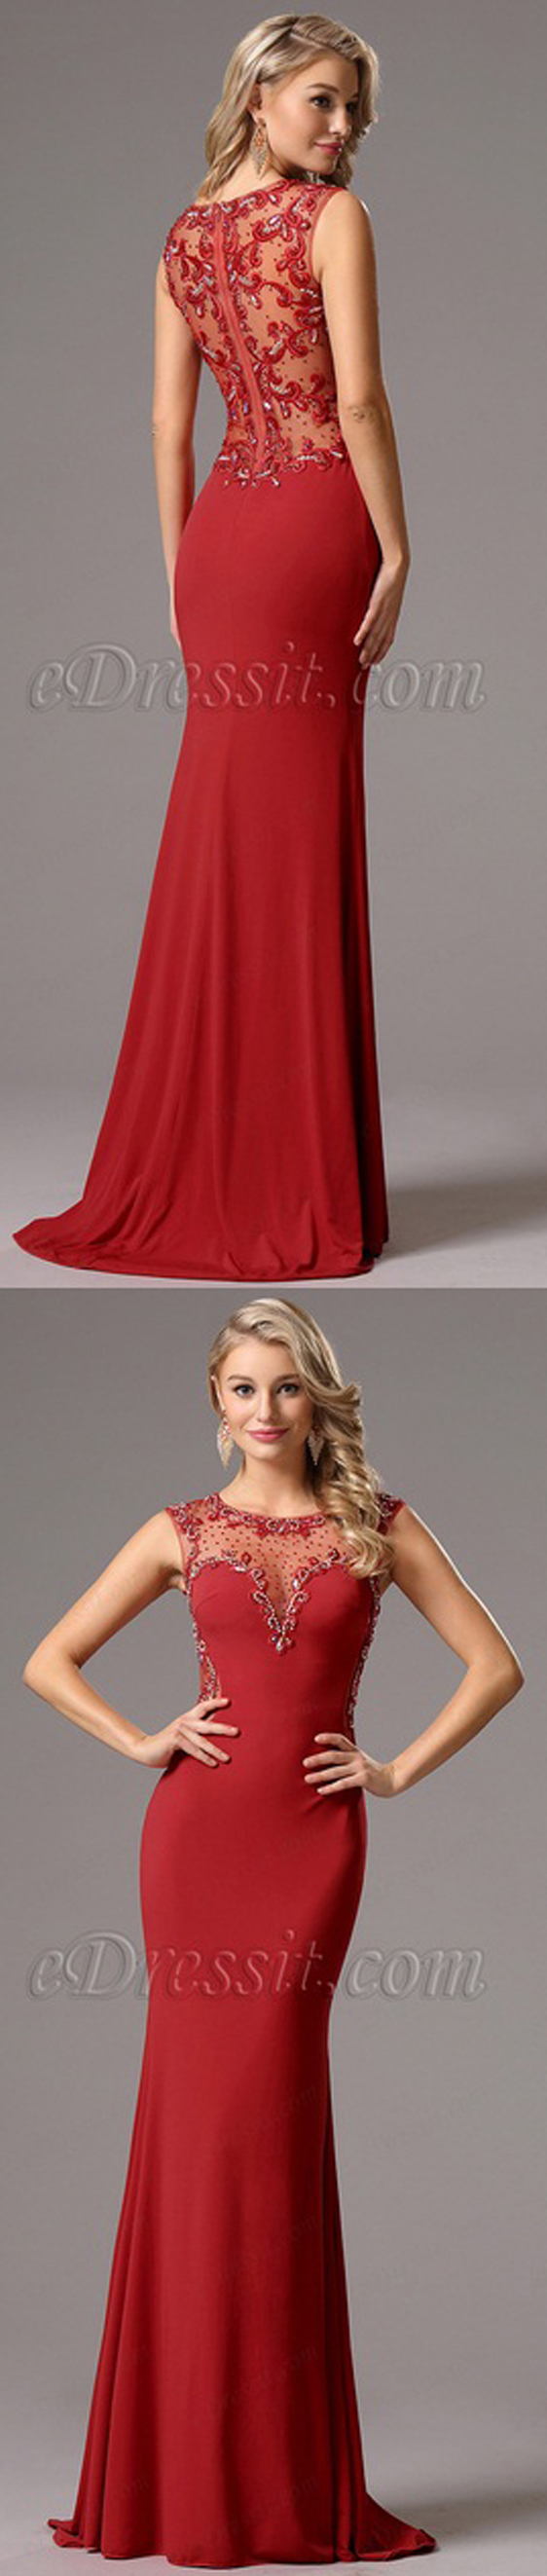 Stunning red gown with fully beaded back!